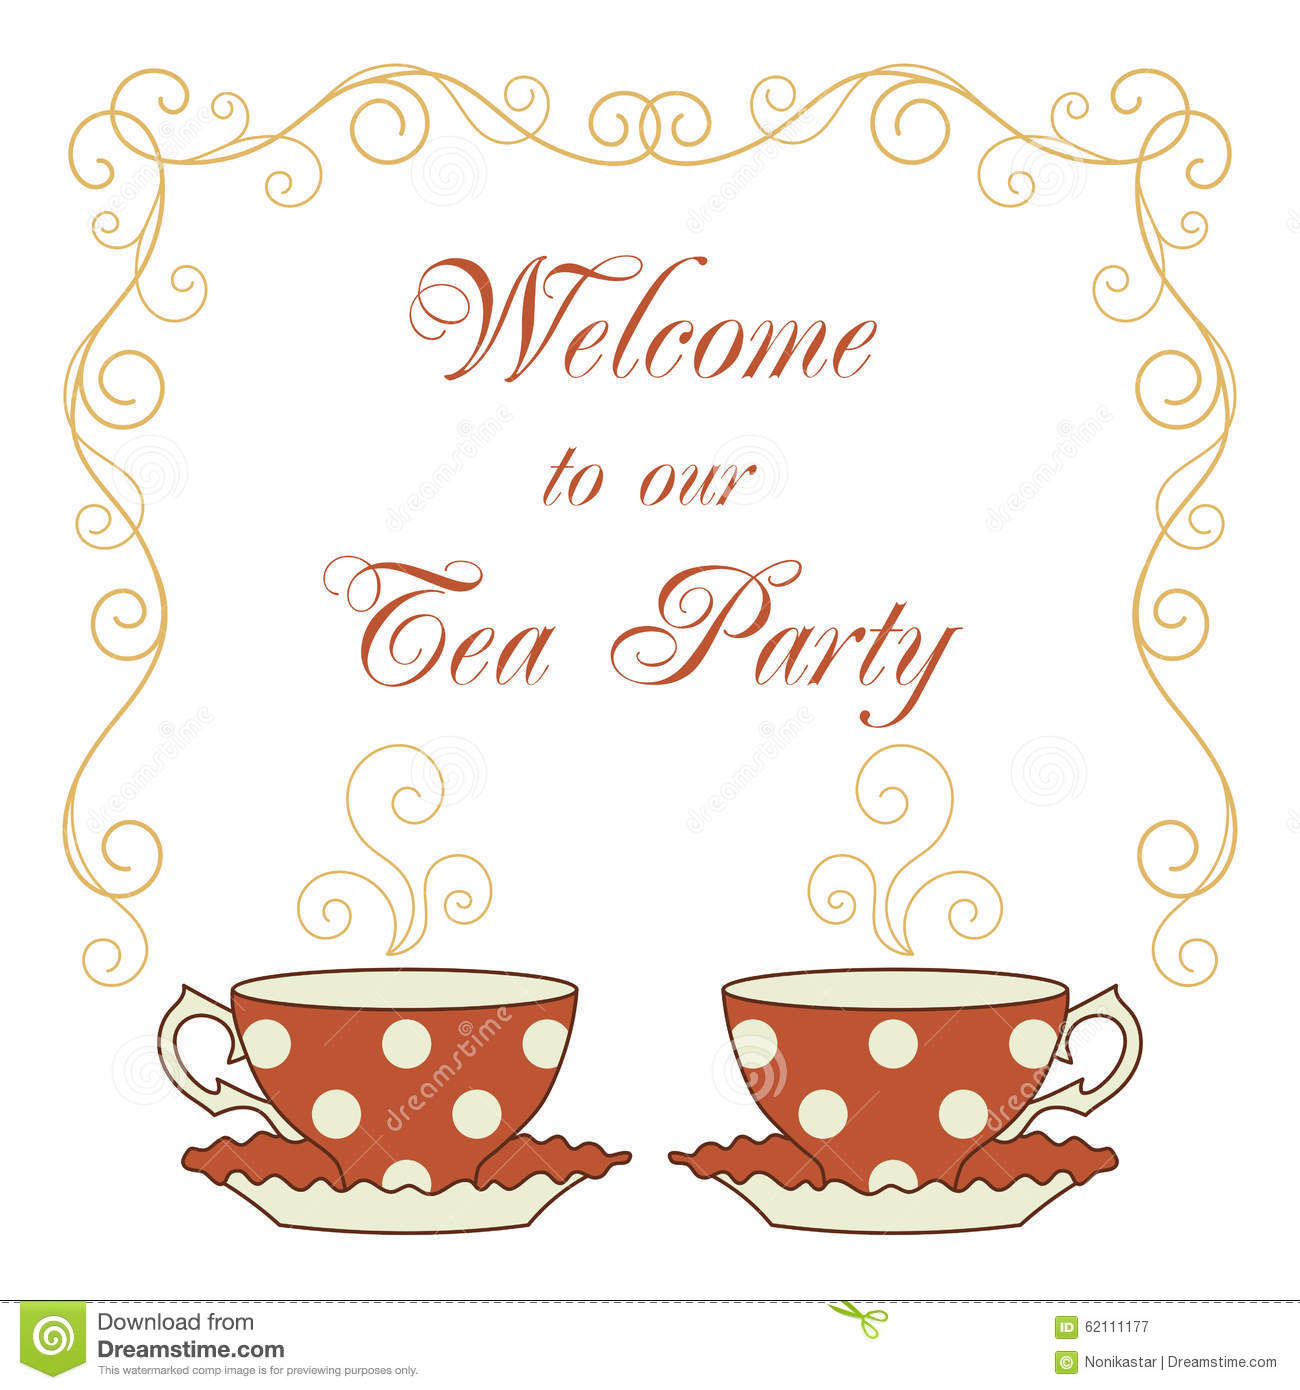 Elegant tea party invitation template with teacups cartoon vector - Card Curly Dot Drawn Frame Greeting Hand Illustration Invitation Message Our Party Polka Tea Teacups